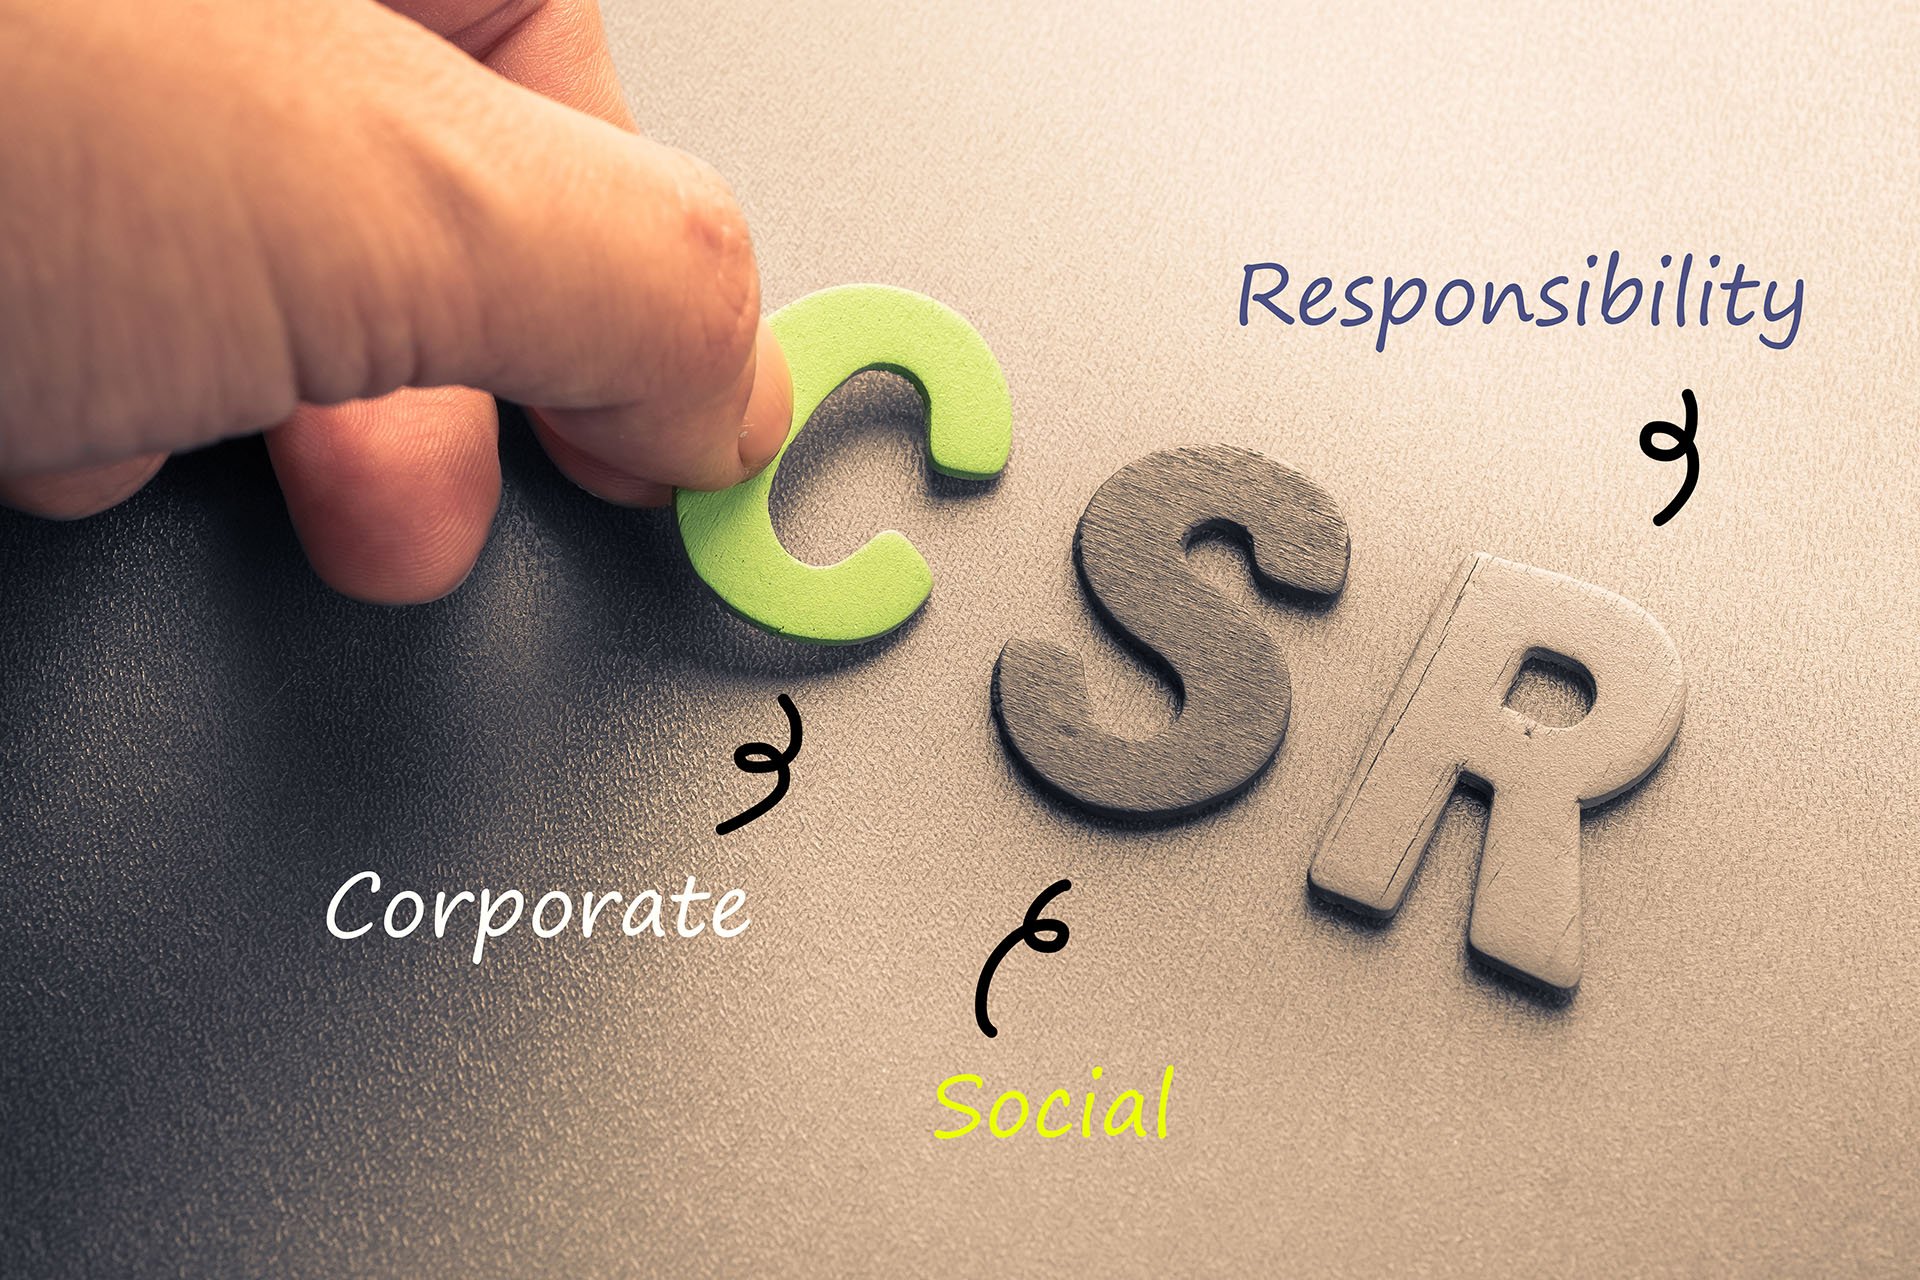 SQM's Corporate Social Responsibility